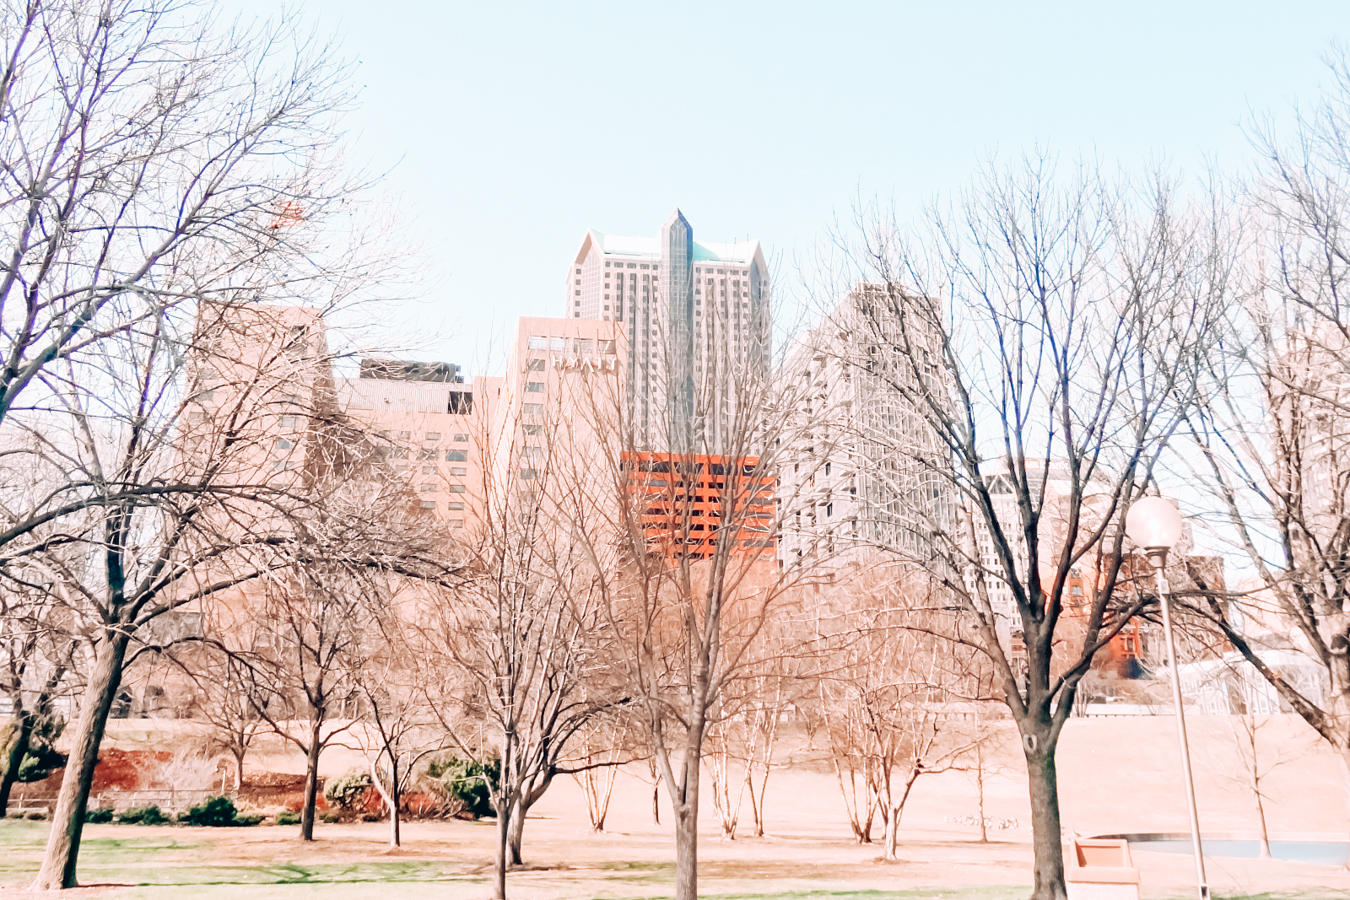 Buildings and trees in St. Louis